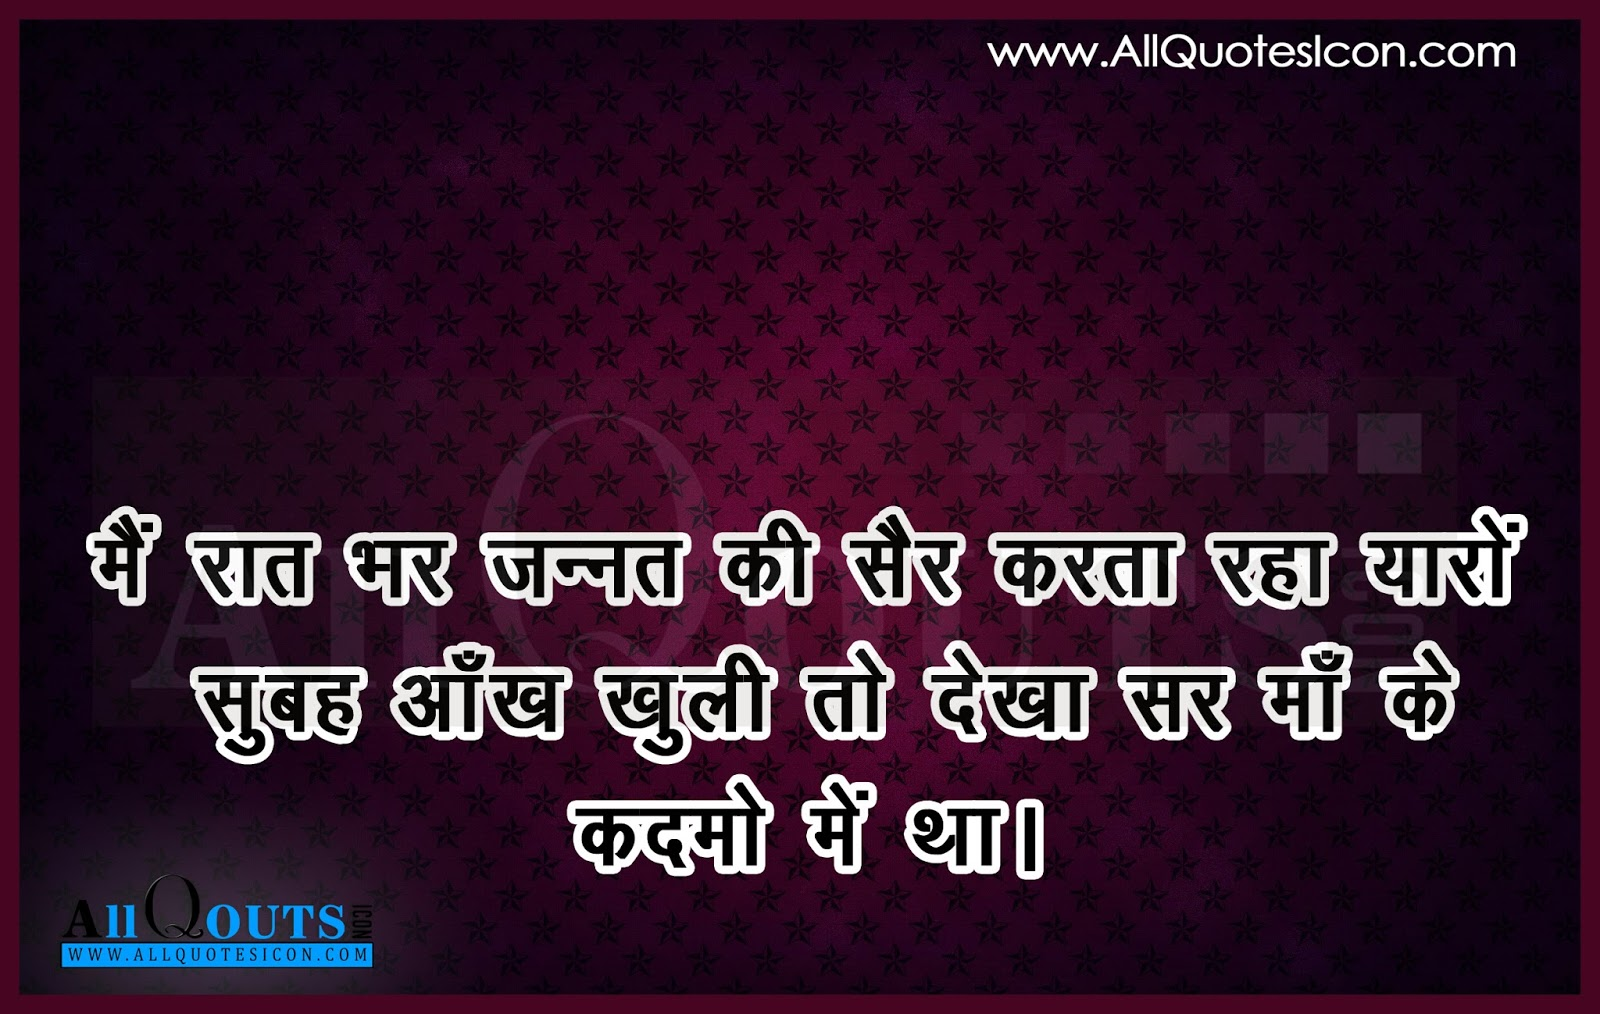 Funny Quotes About Life Funny Quotes On Love In Hindi With Images  Dobre For